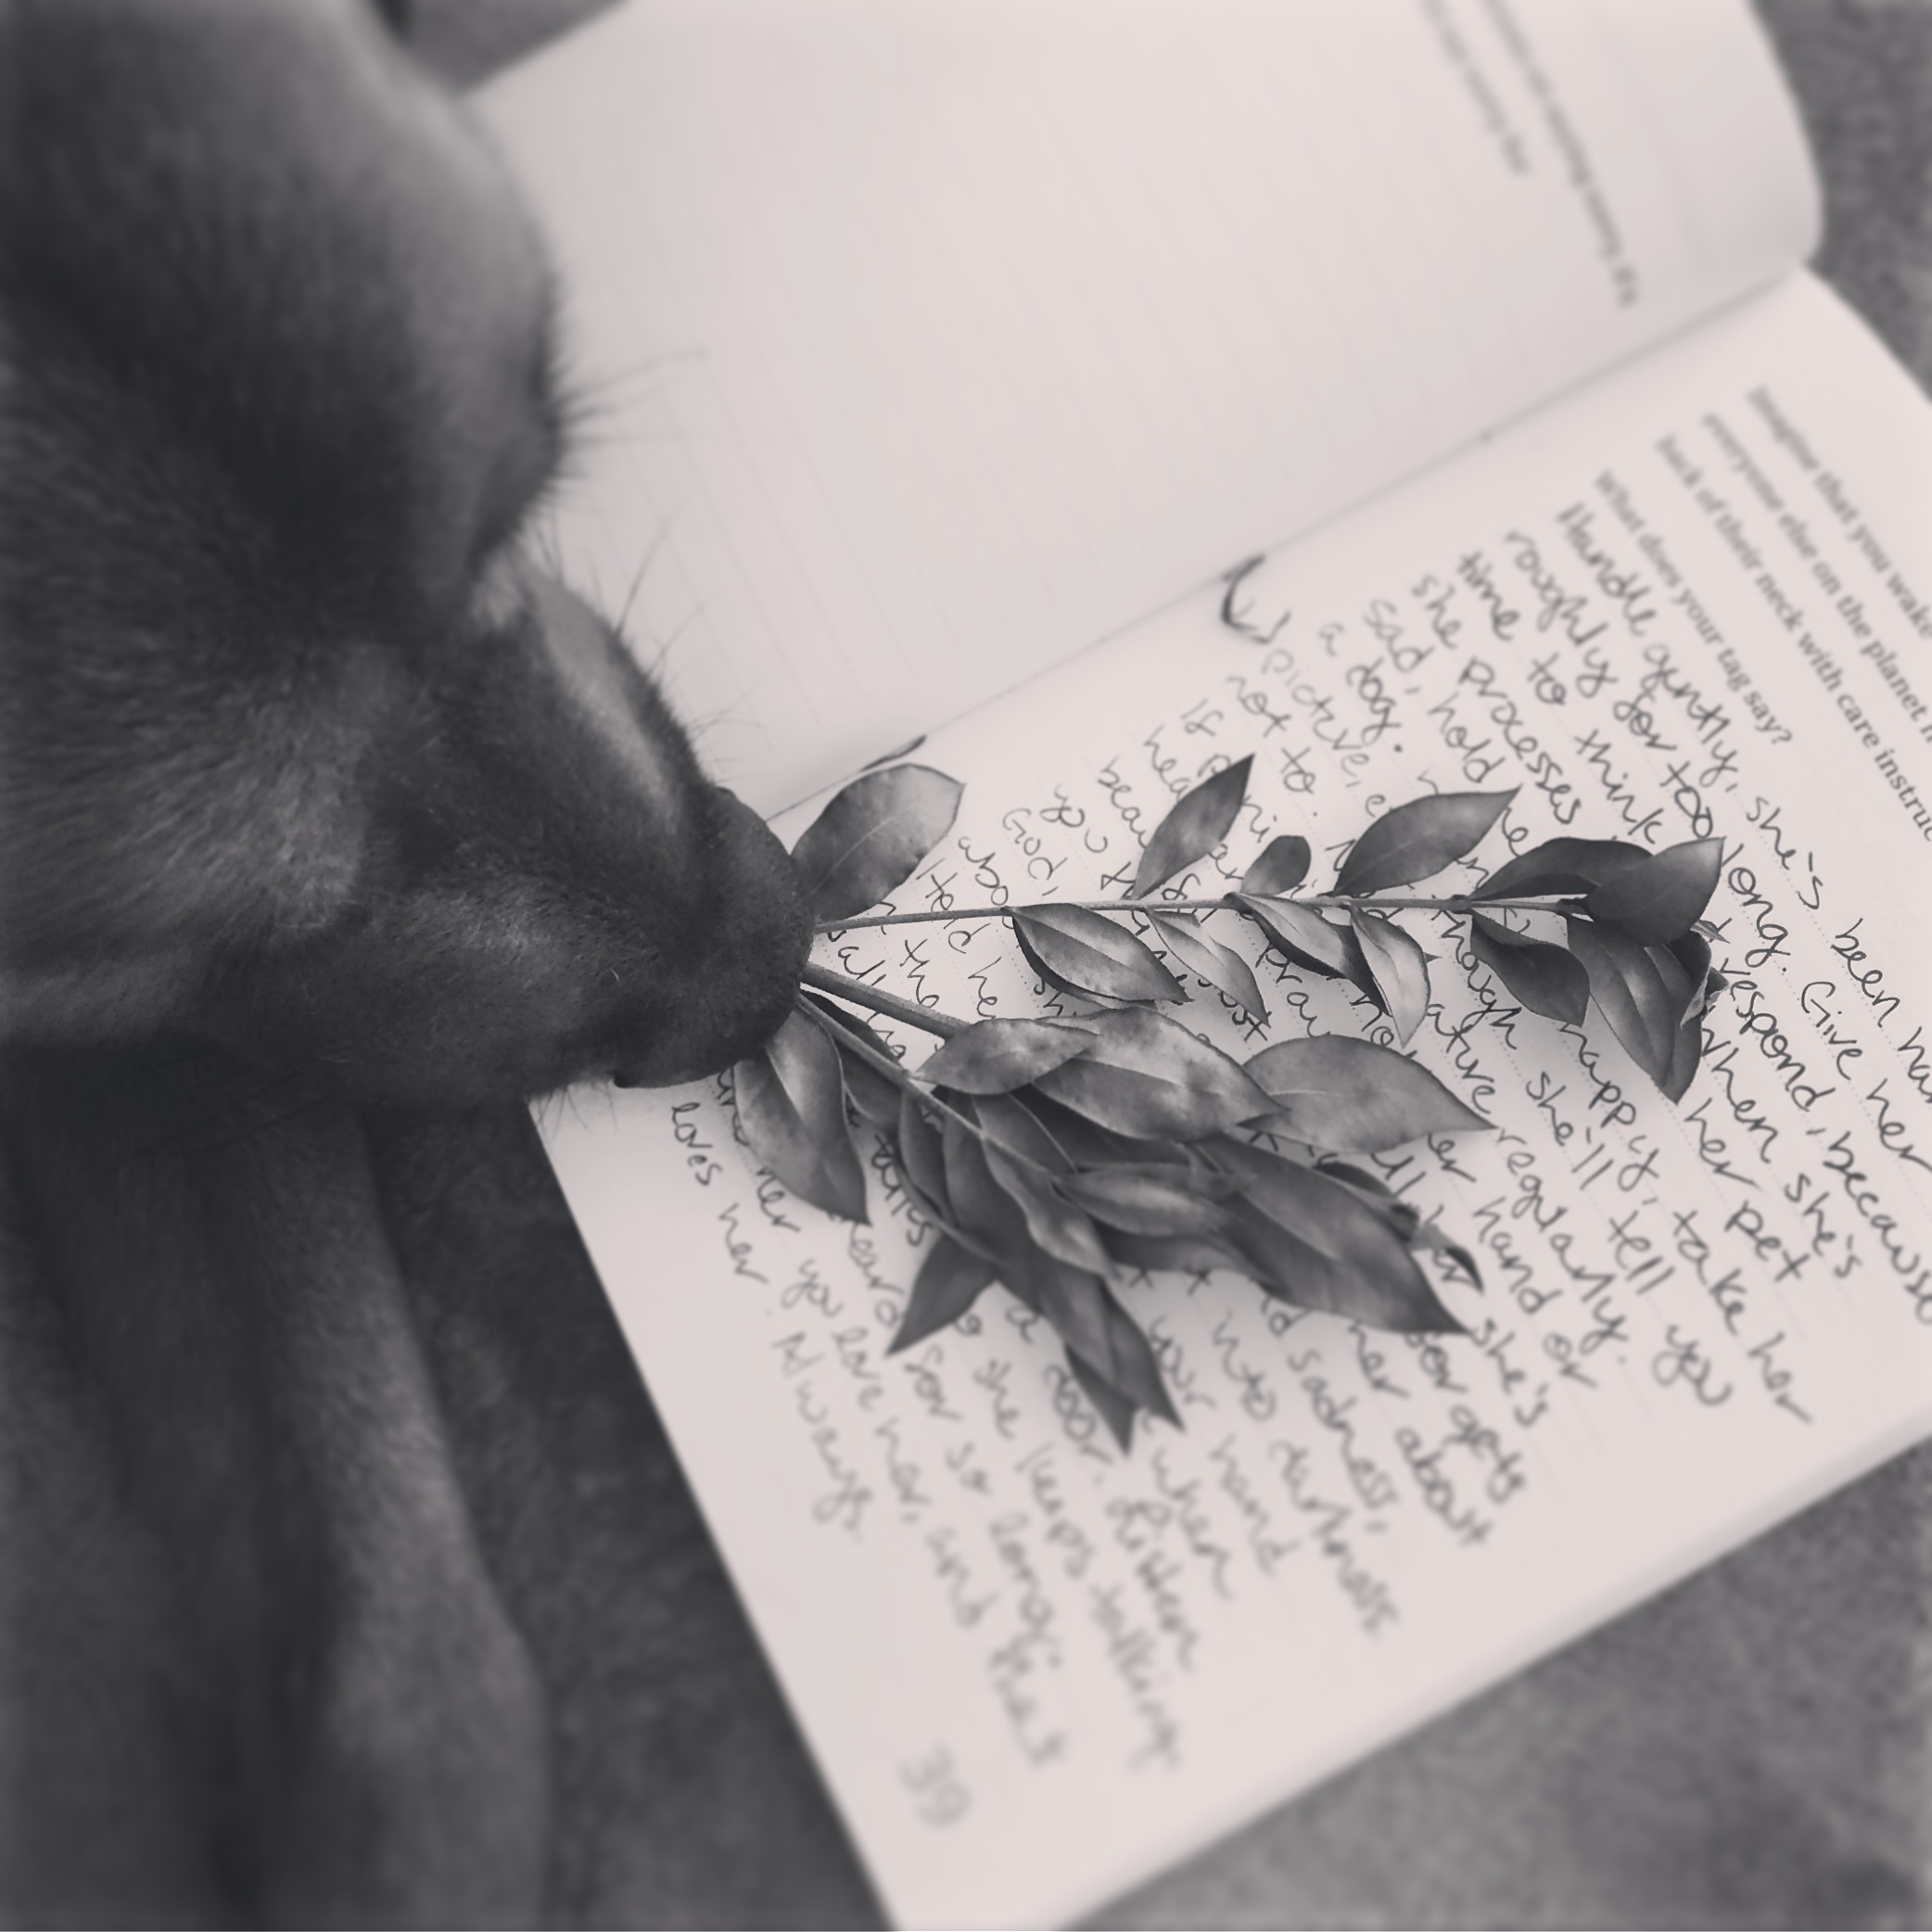 Three things in one picture that clear my mind- journaling, sitting quietly with my dog, and nature in any form (today it's dried greenery lying around).